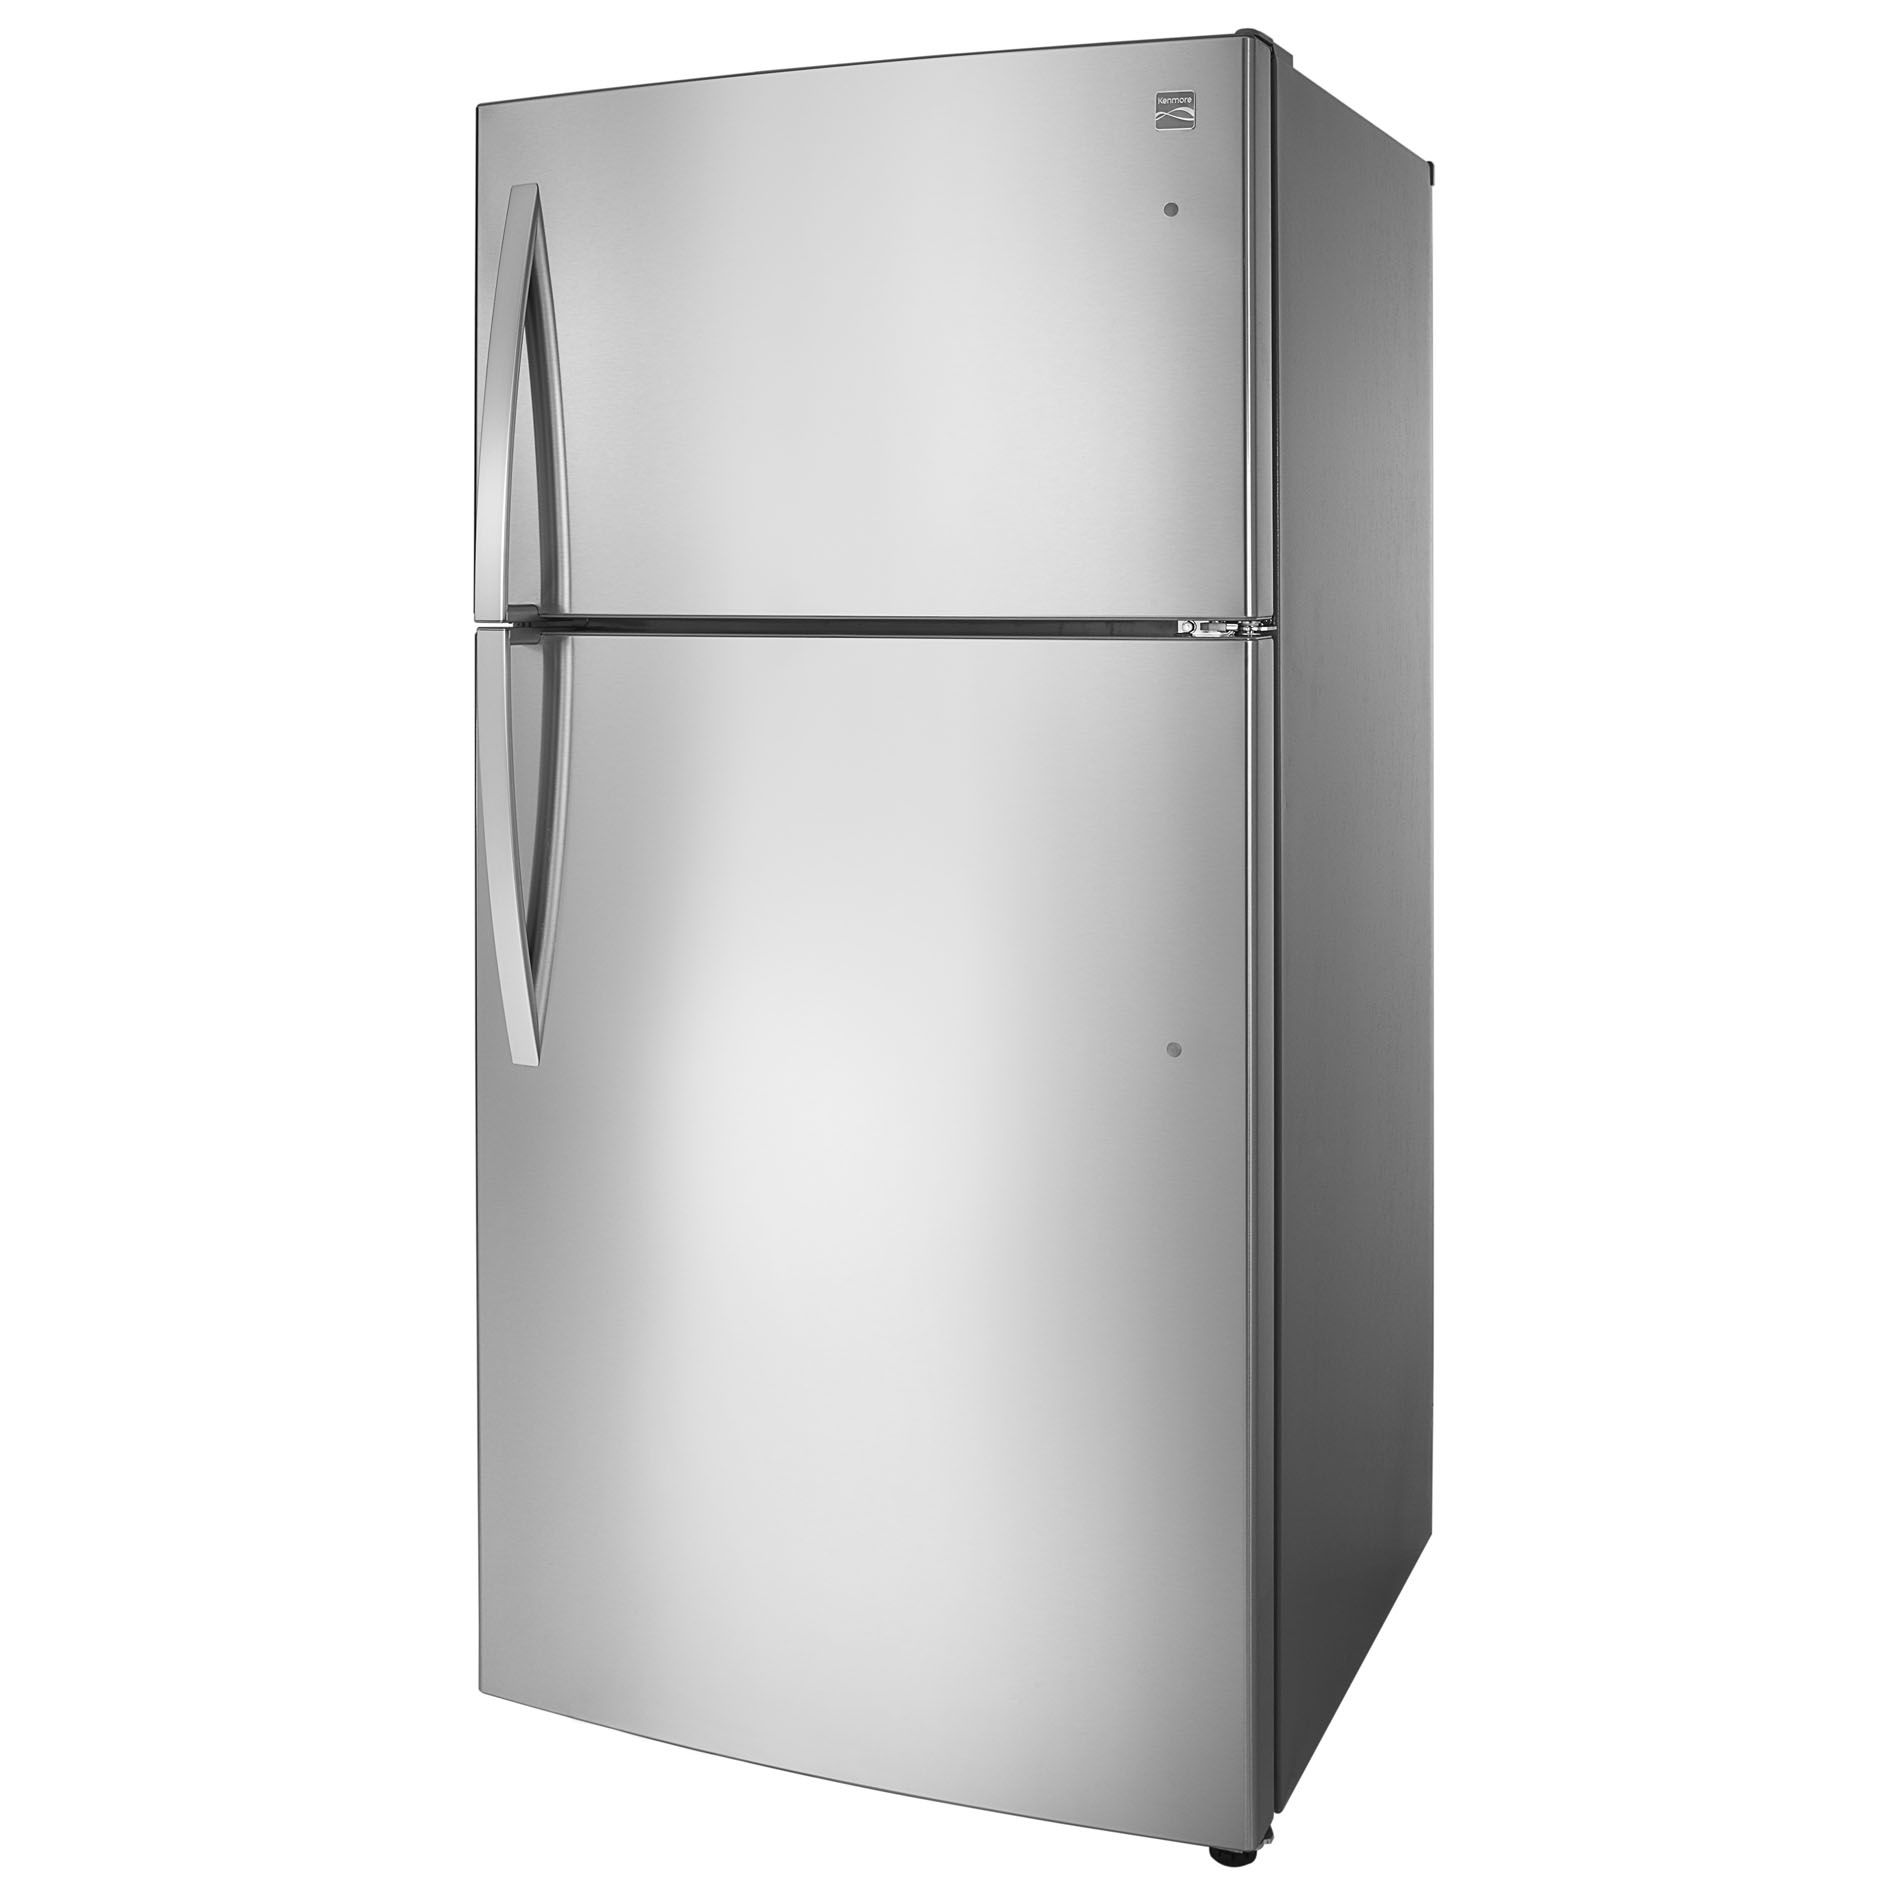 "Kenmore 79433 23.8 cu. ft. 33"" Top-Freezer Refrigerator w/ Internal Water Dispenser - Stainless Steel"